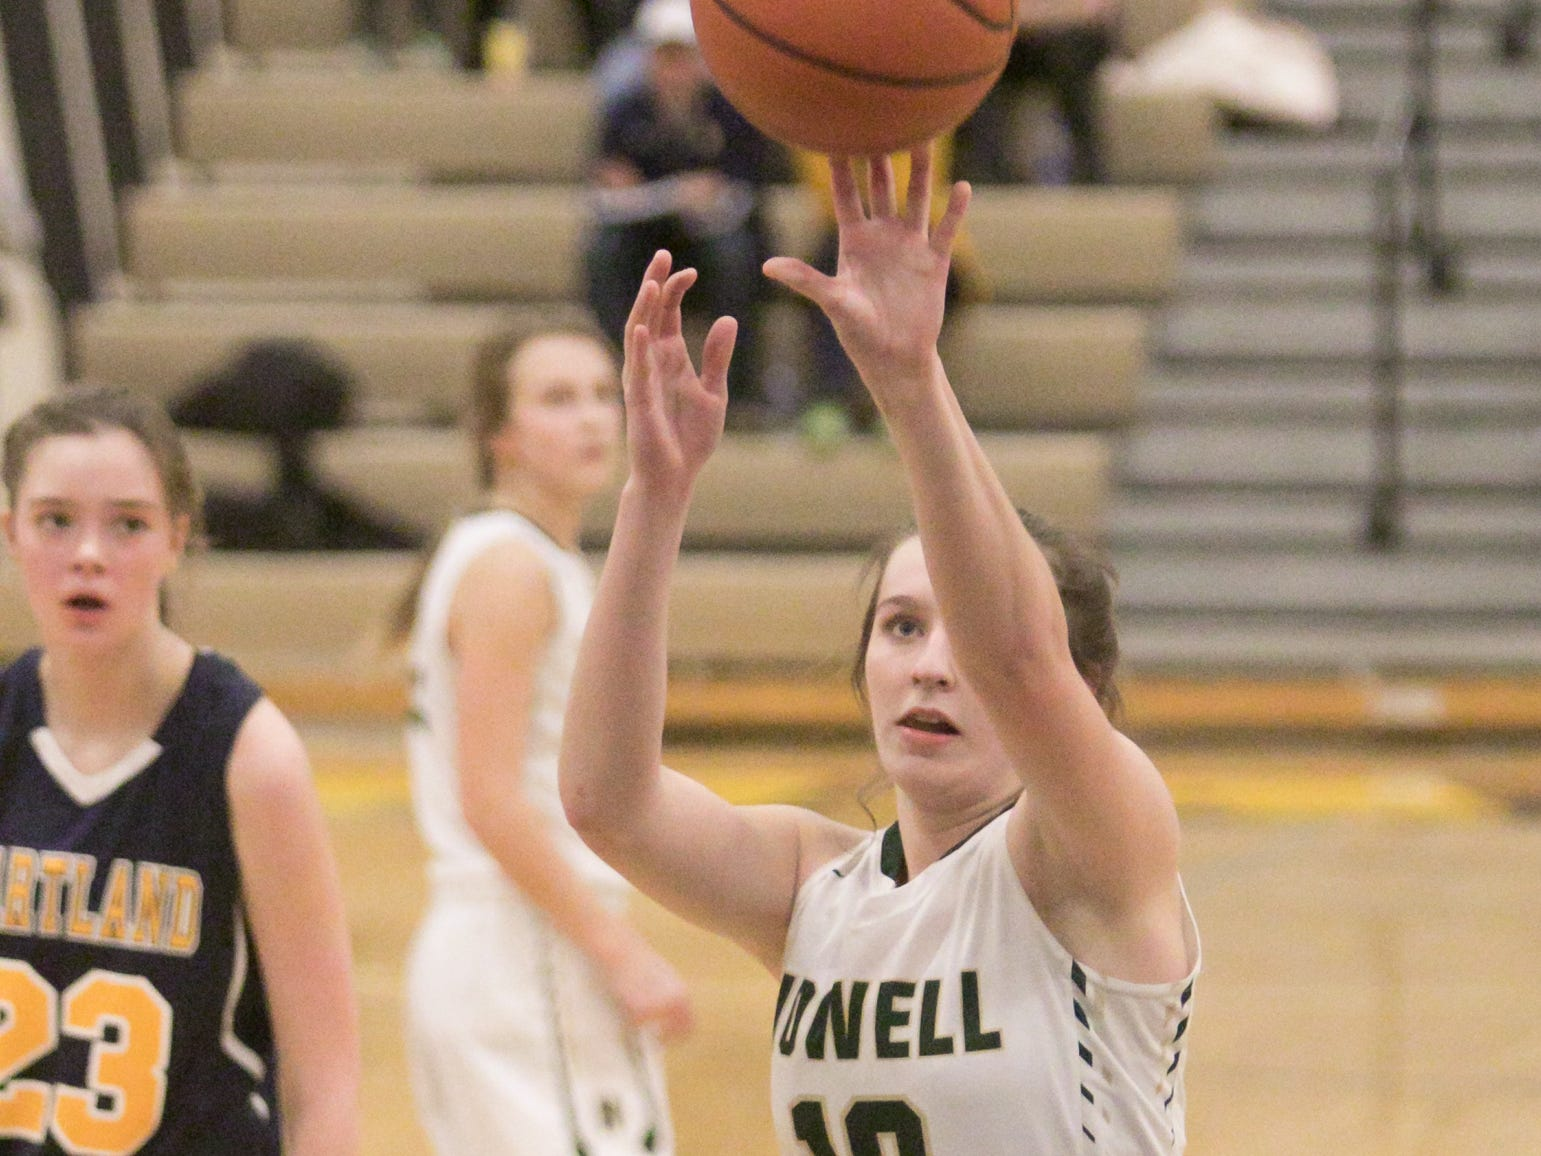 Howell Highlander Kaylee Wendell shoots a free throw in the fourth quarter of the district championship game against Hartland Friday, March 8, 2019.